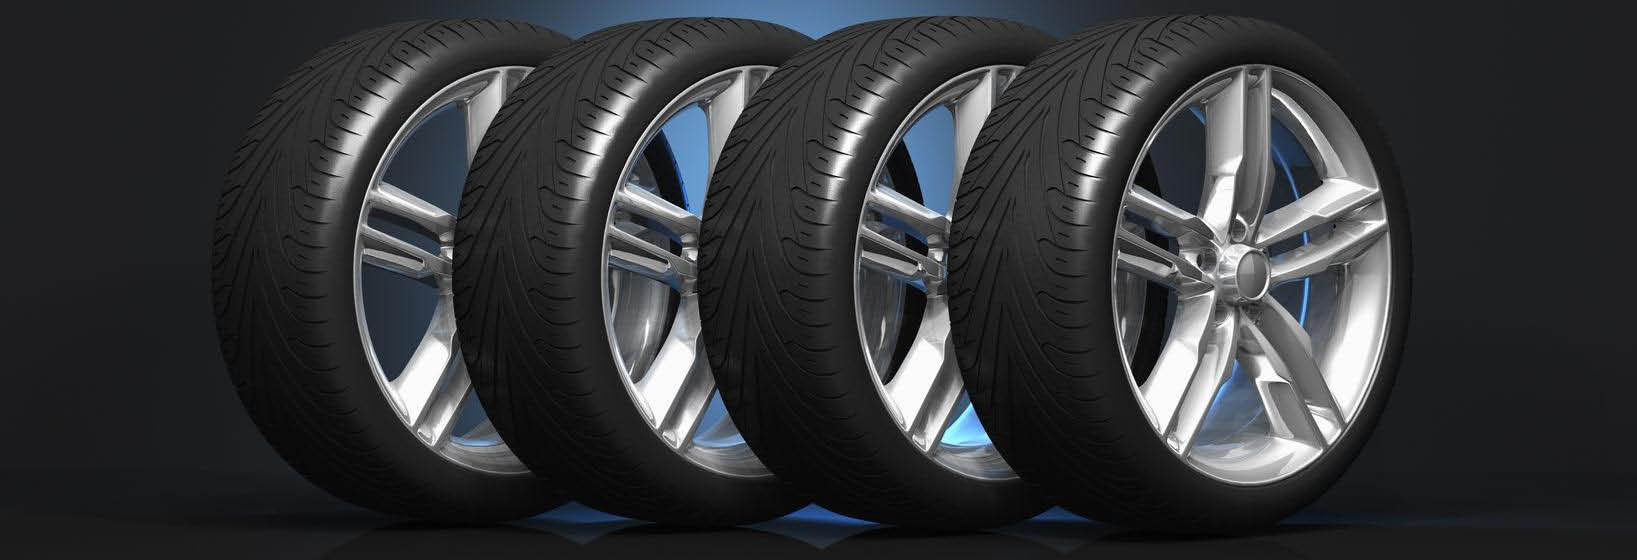 New & Used tires  at Tires Unlimited.